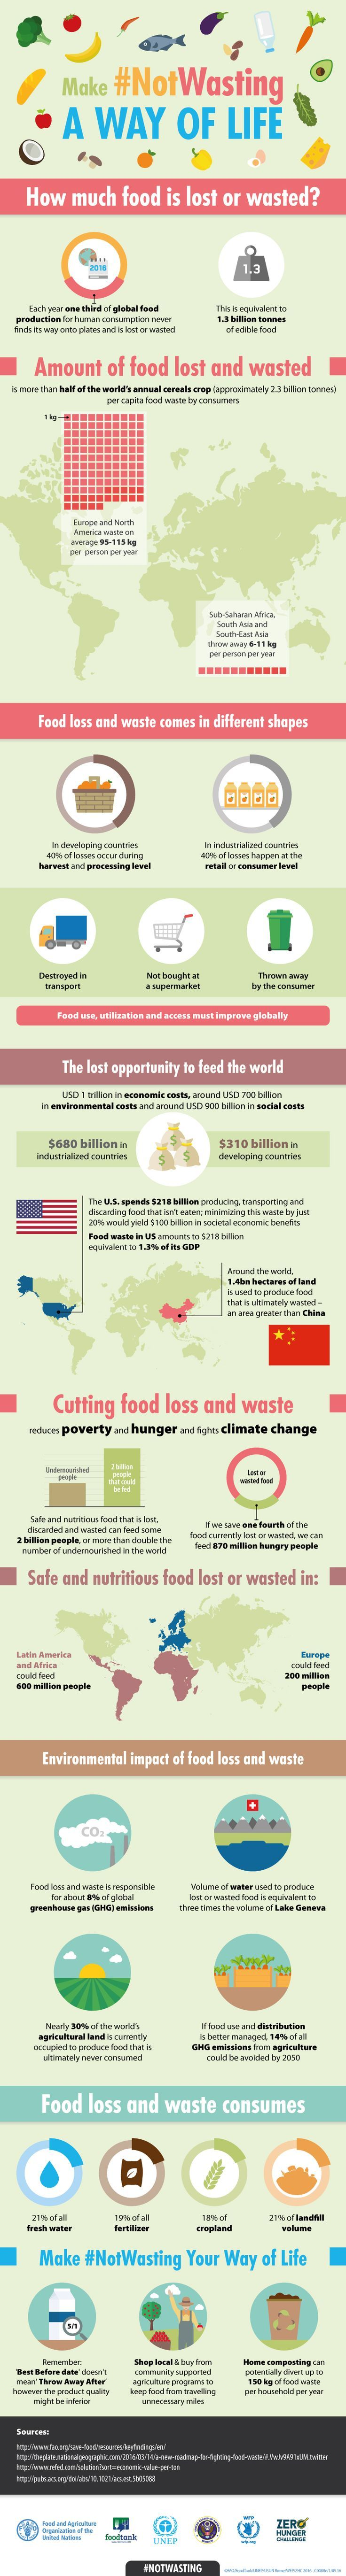 Each year one third of global food production for human consumption never finds its way onto plates and is lost or wasted. Cutting food loss and waste reduces poverty and hunger and fights climate change. Make #NotWasting Your Way of Life.: